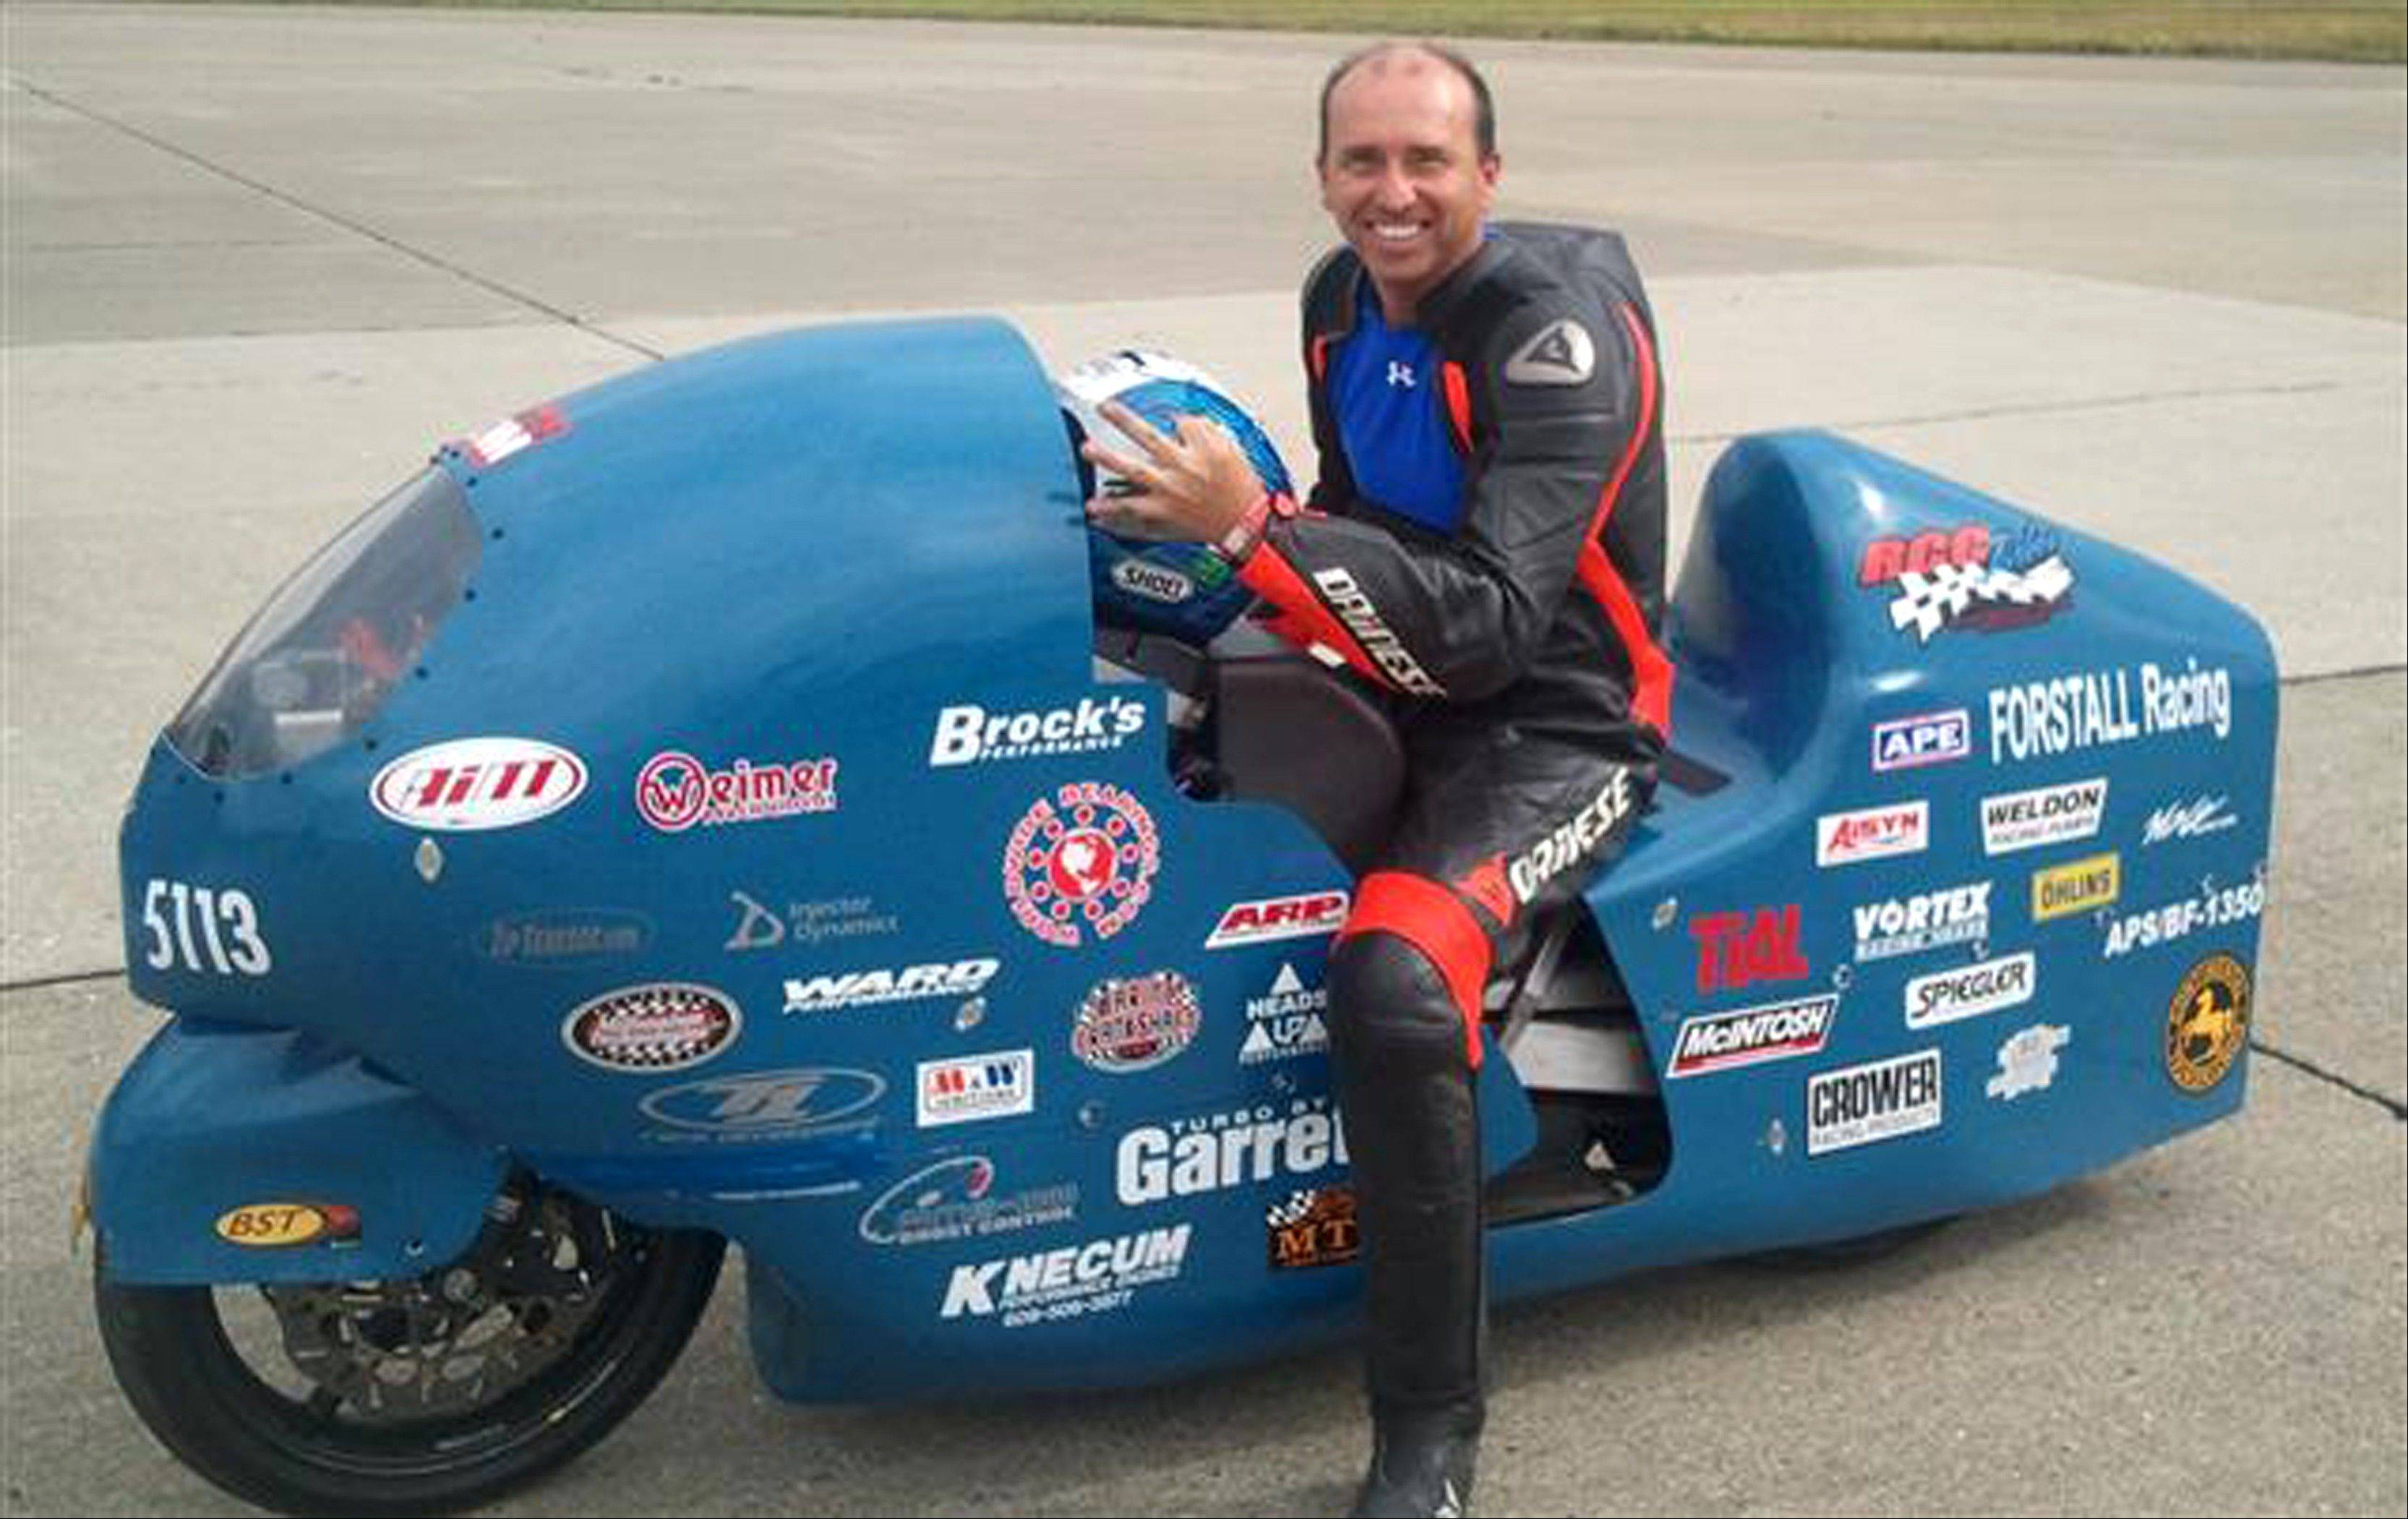 Fla. motorcycle racer dies after hitting 285 mph